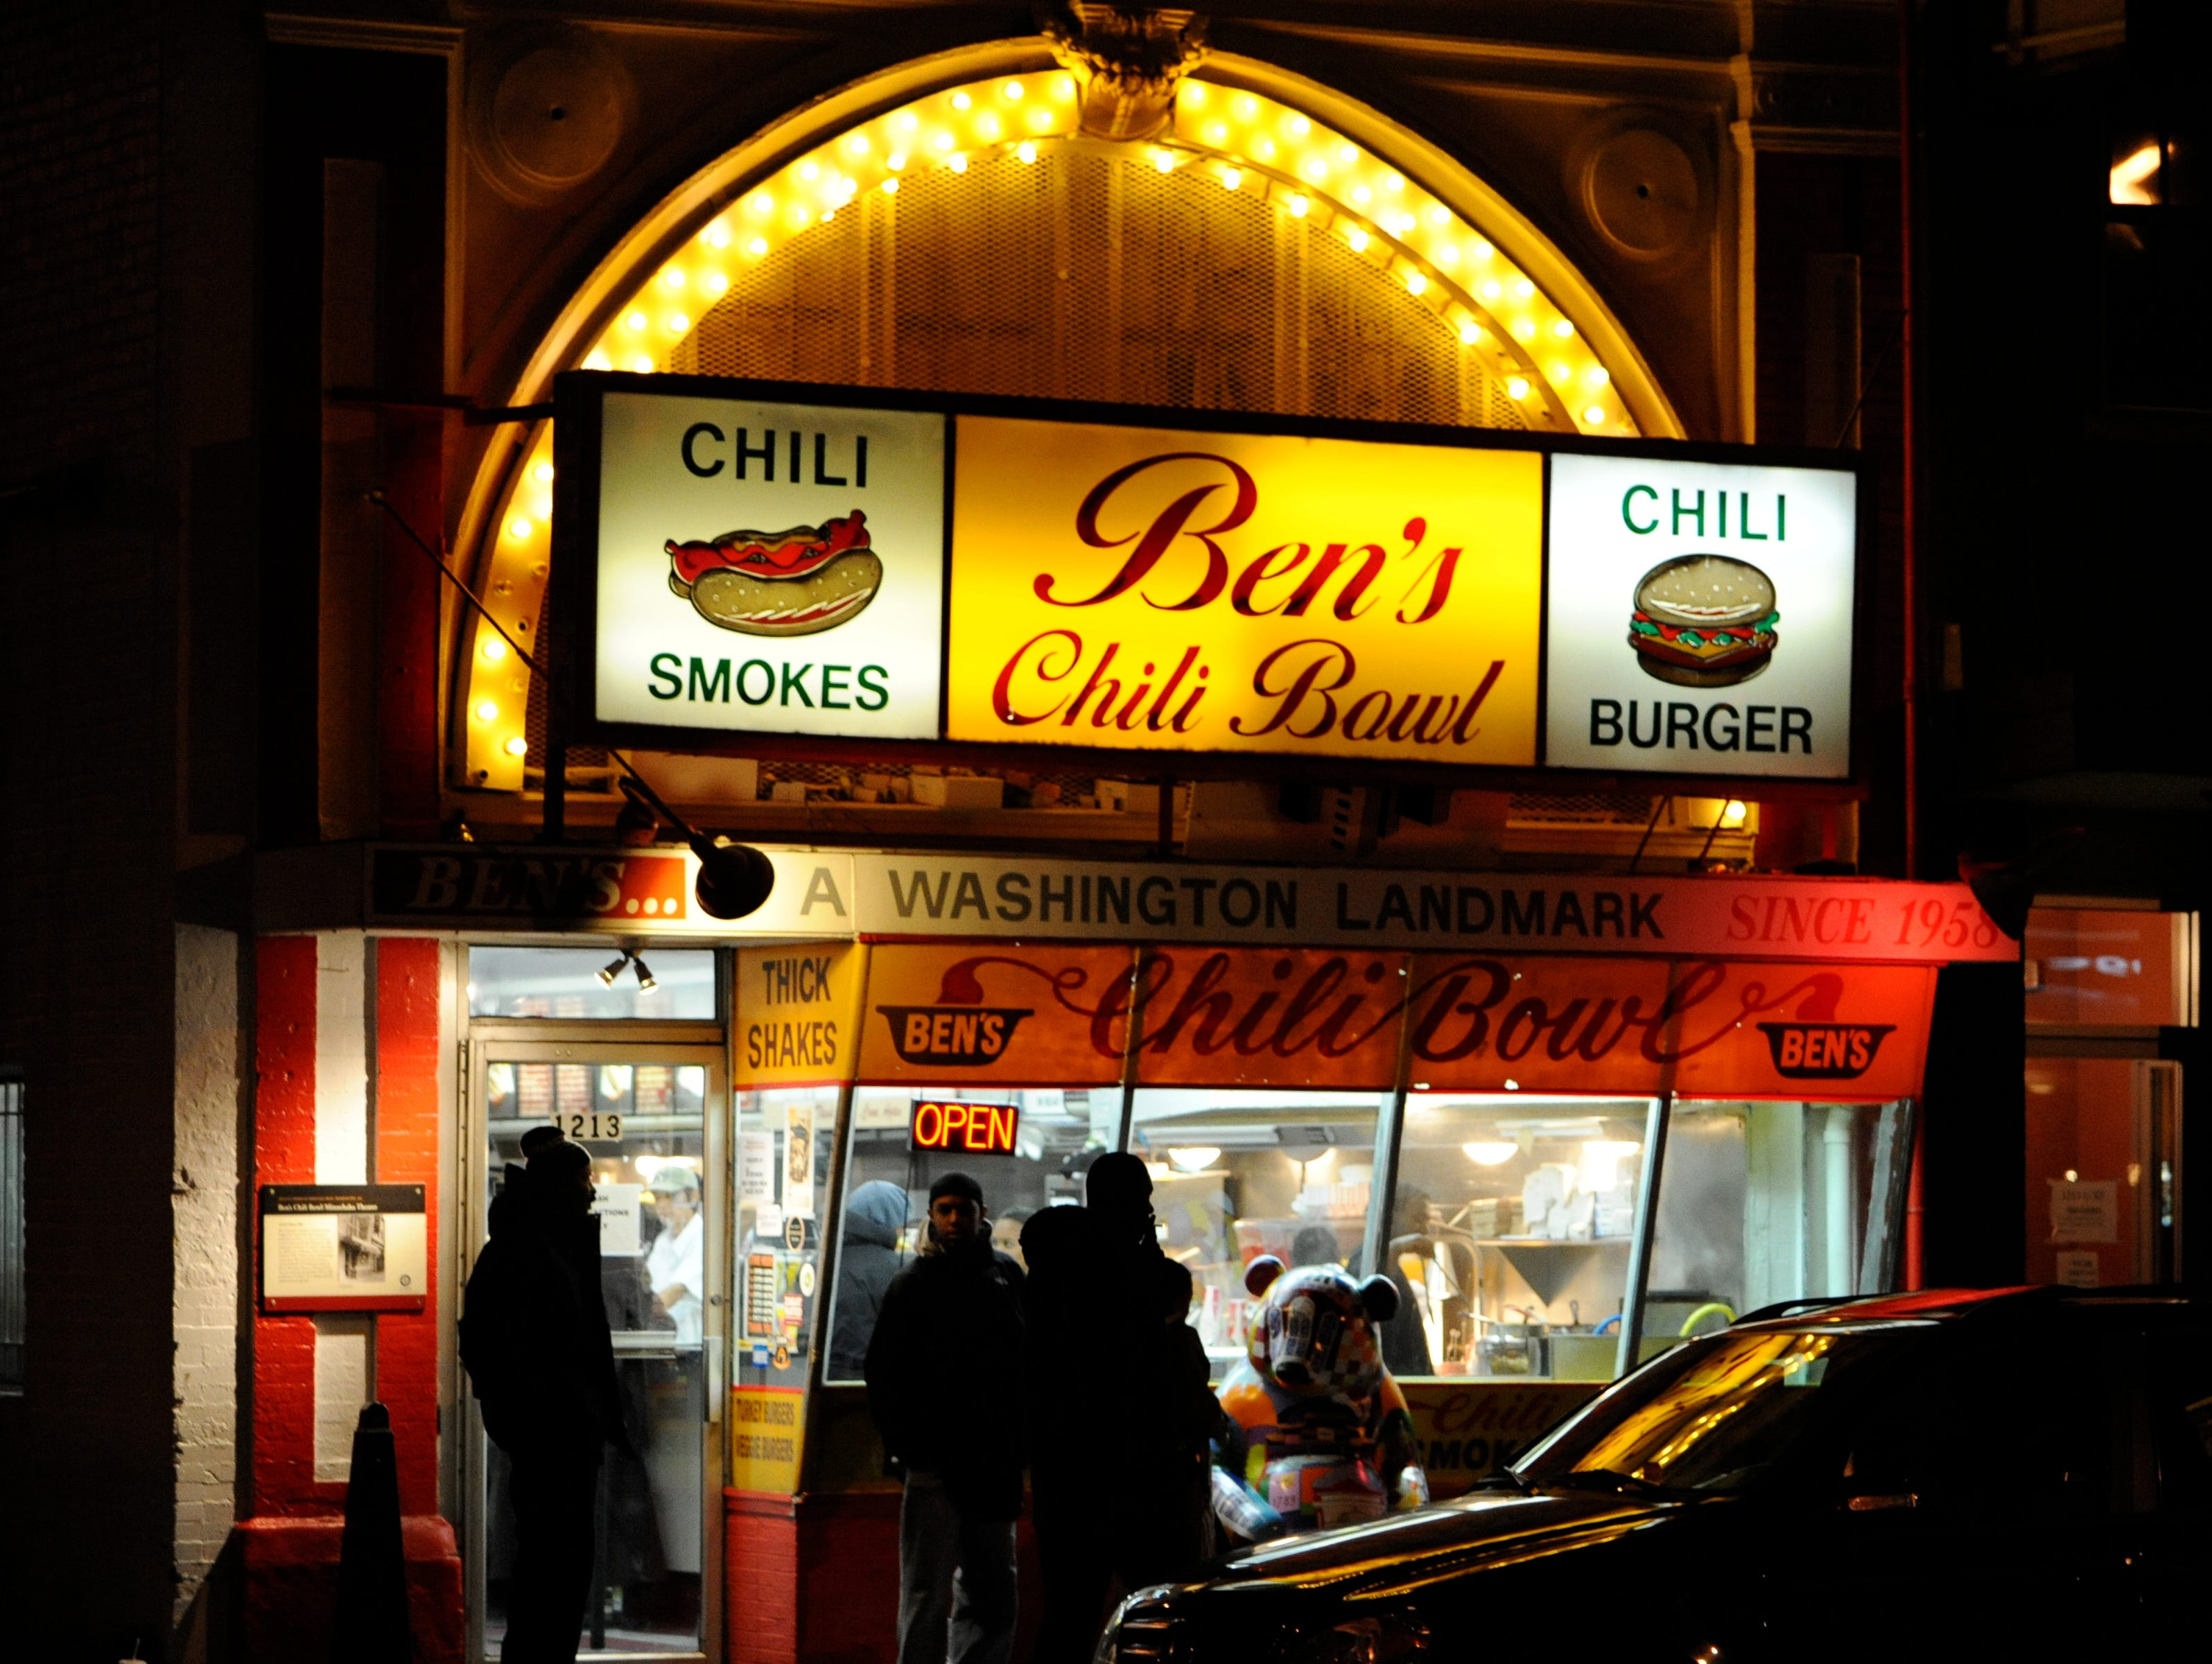 Ben's Chili Bowl is a famous landmark restaurant that has seen U Street through its ups and downs.